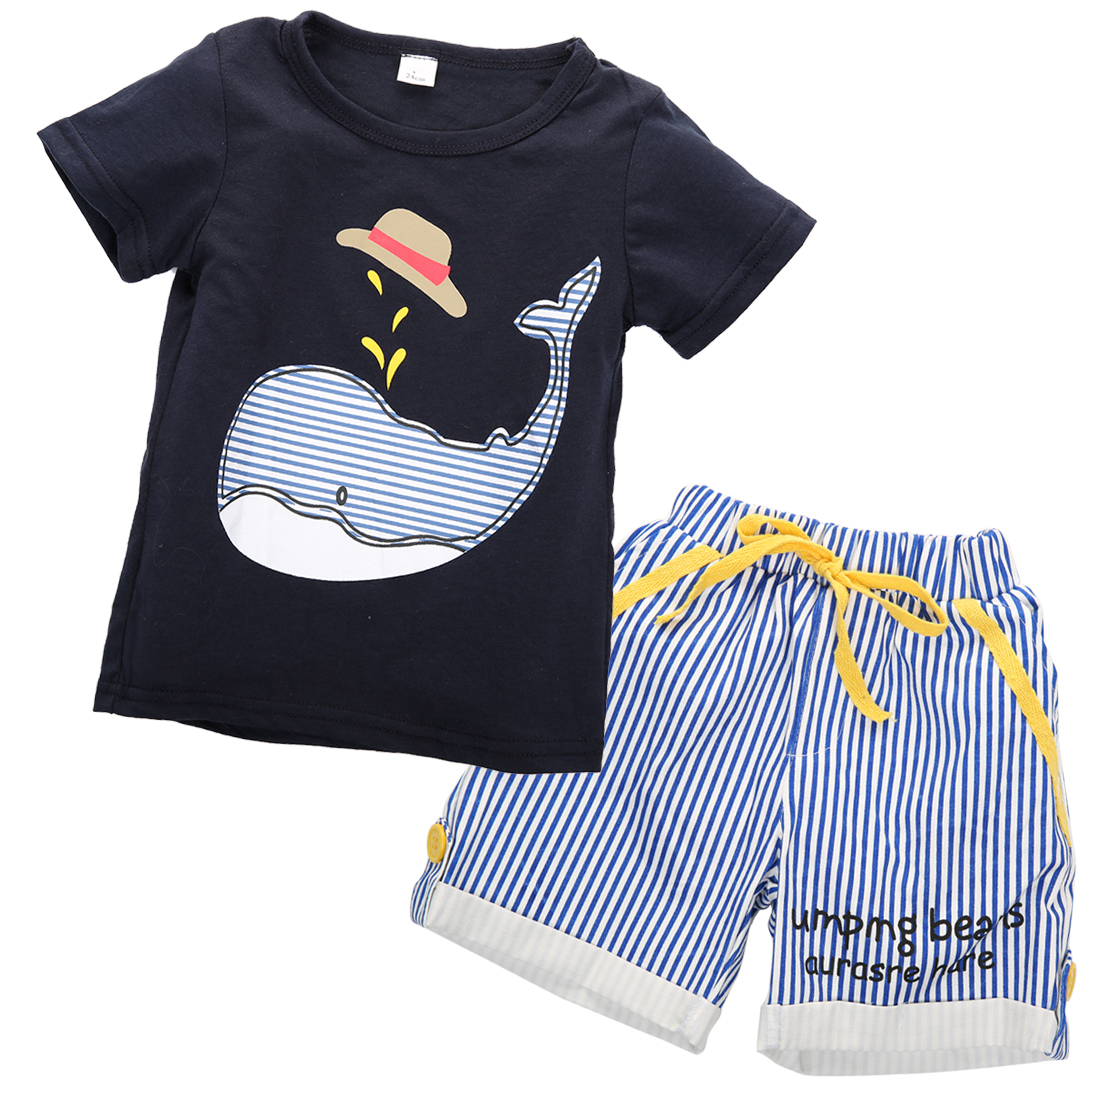 2491bad8a94c 2017 2Pcs New Toddler Kids Boys Cloth Sets Summer Short Sleeve T-shirt  Tops+ Shorts Outfits Set Age 1-7Y